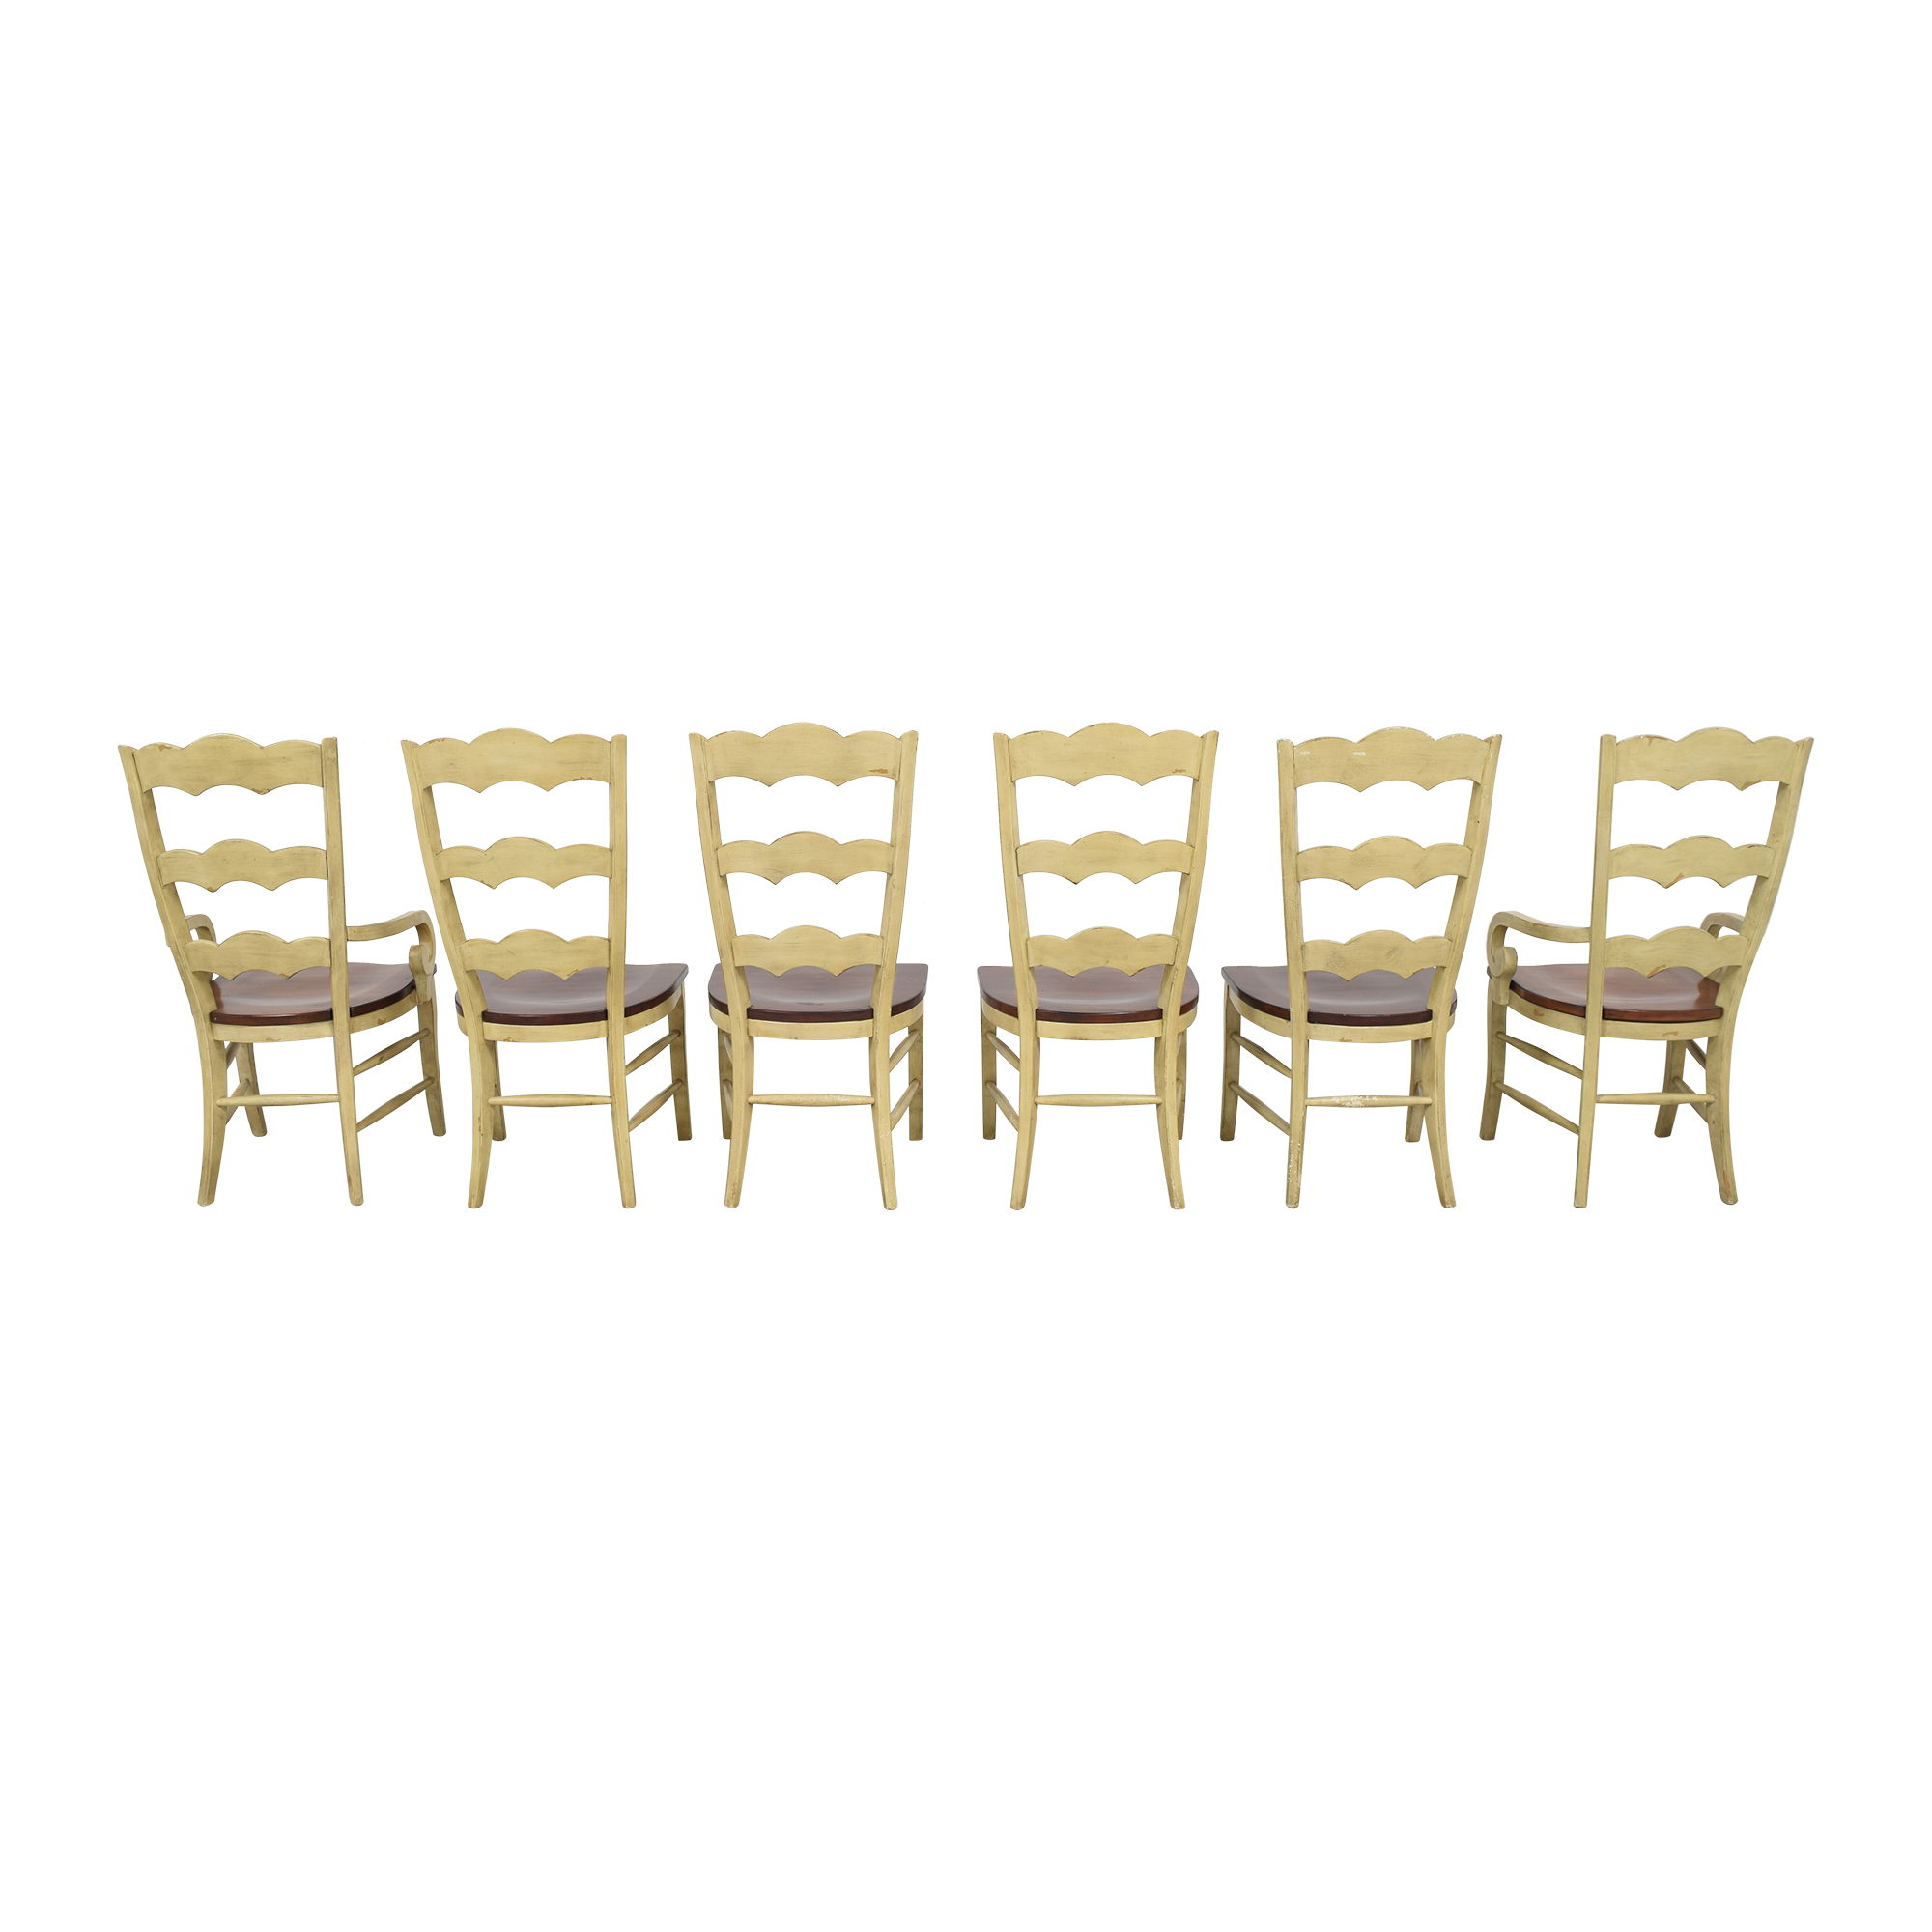 Hooker Furniture Hooker Dining Chairs on sale